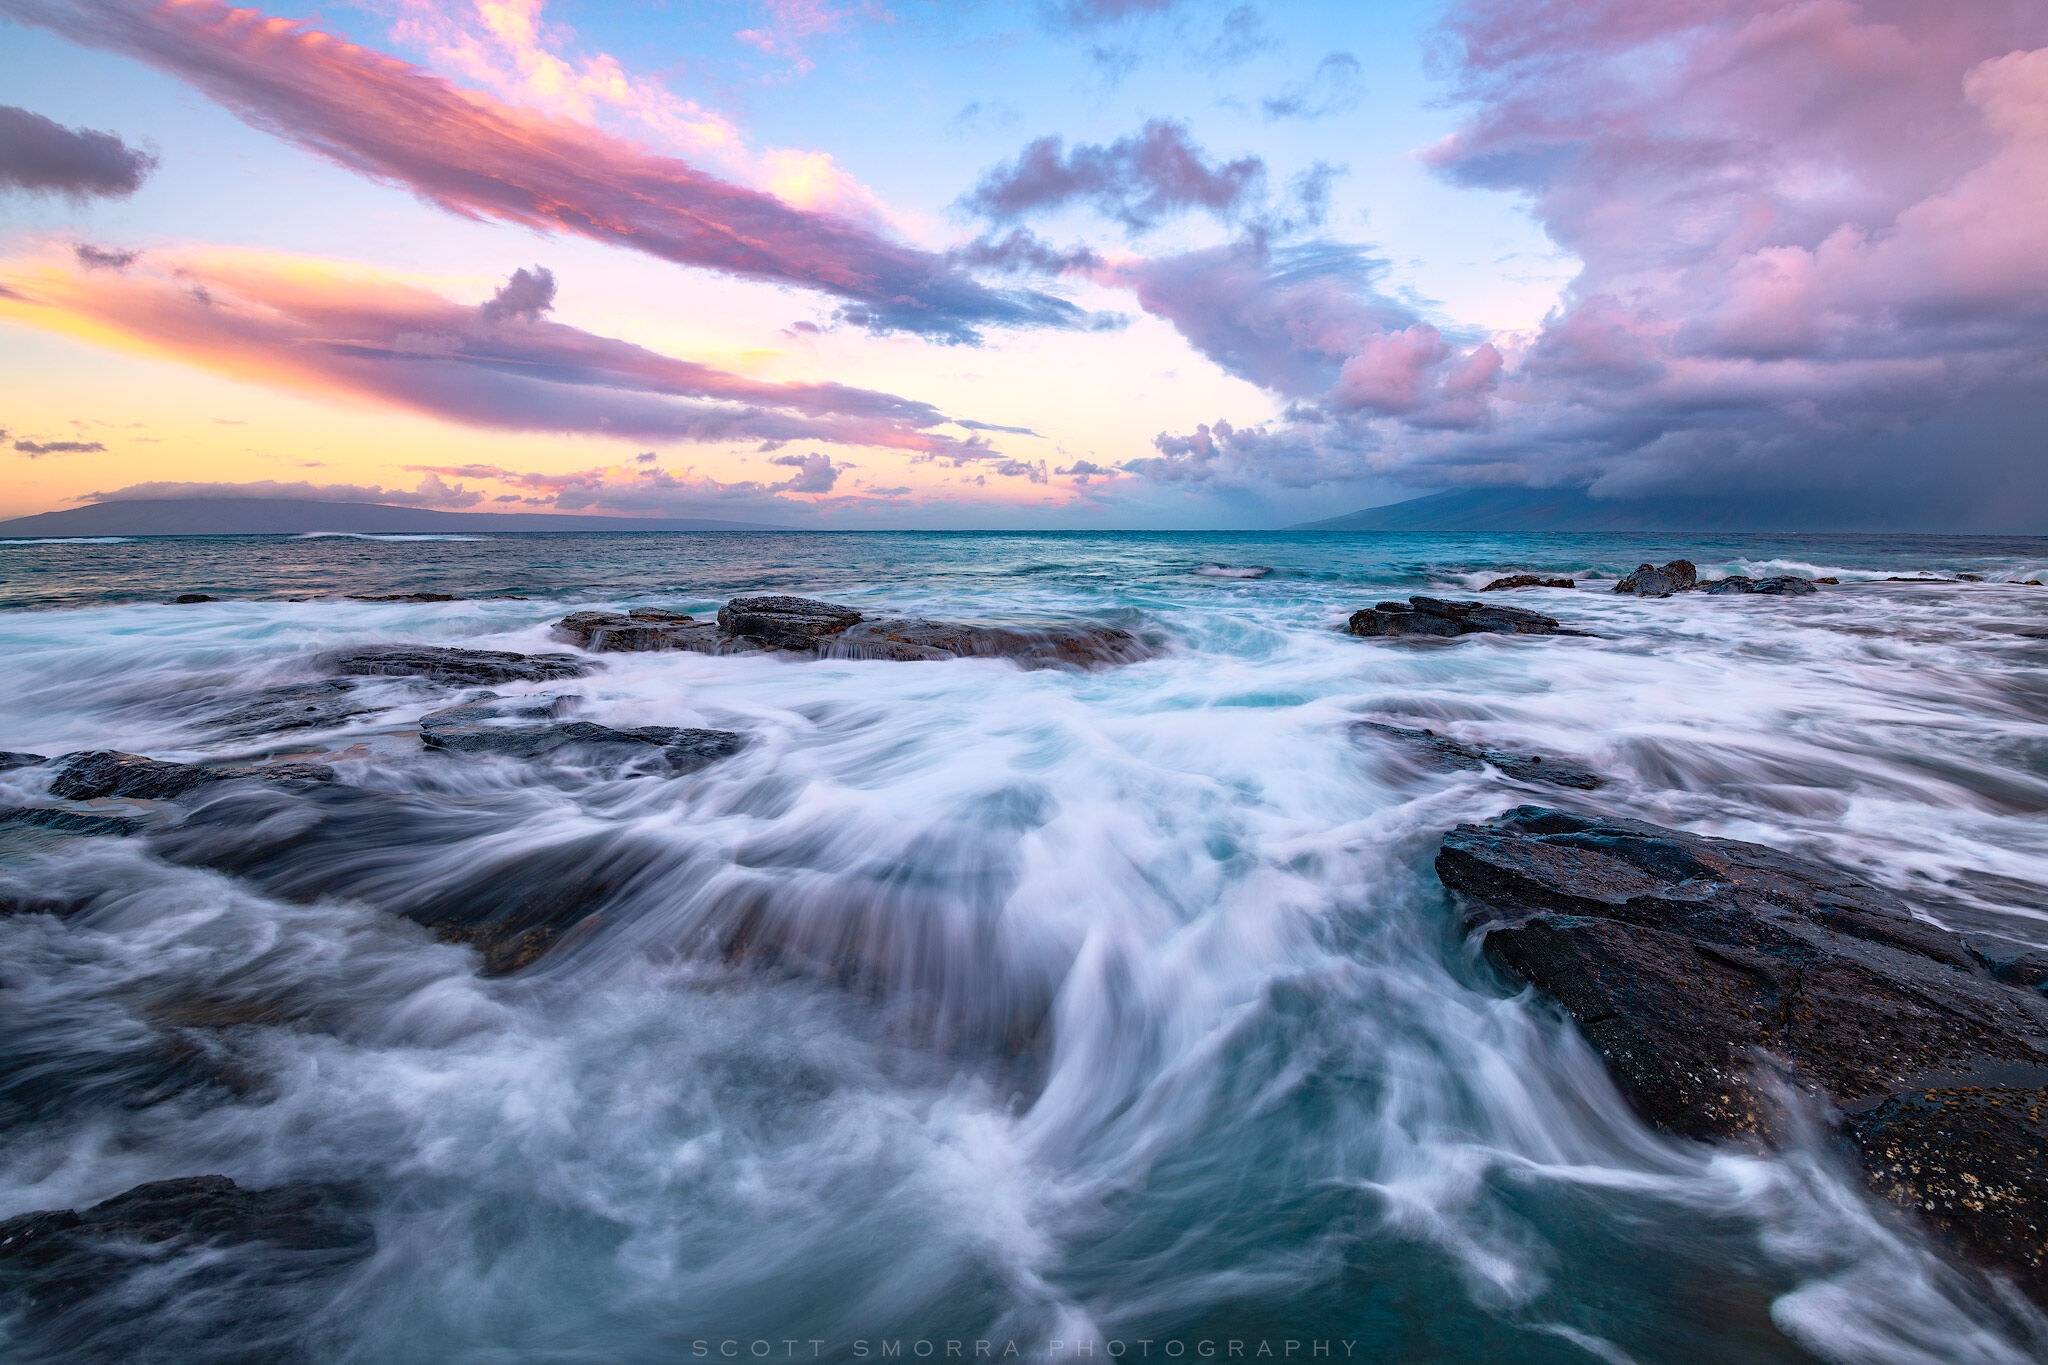 Add beauty and elegance to your home with this fine art print from Scott Smorra Photography's Hawaii Collection. Order your print...